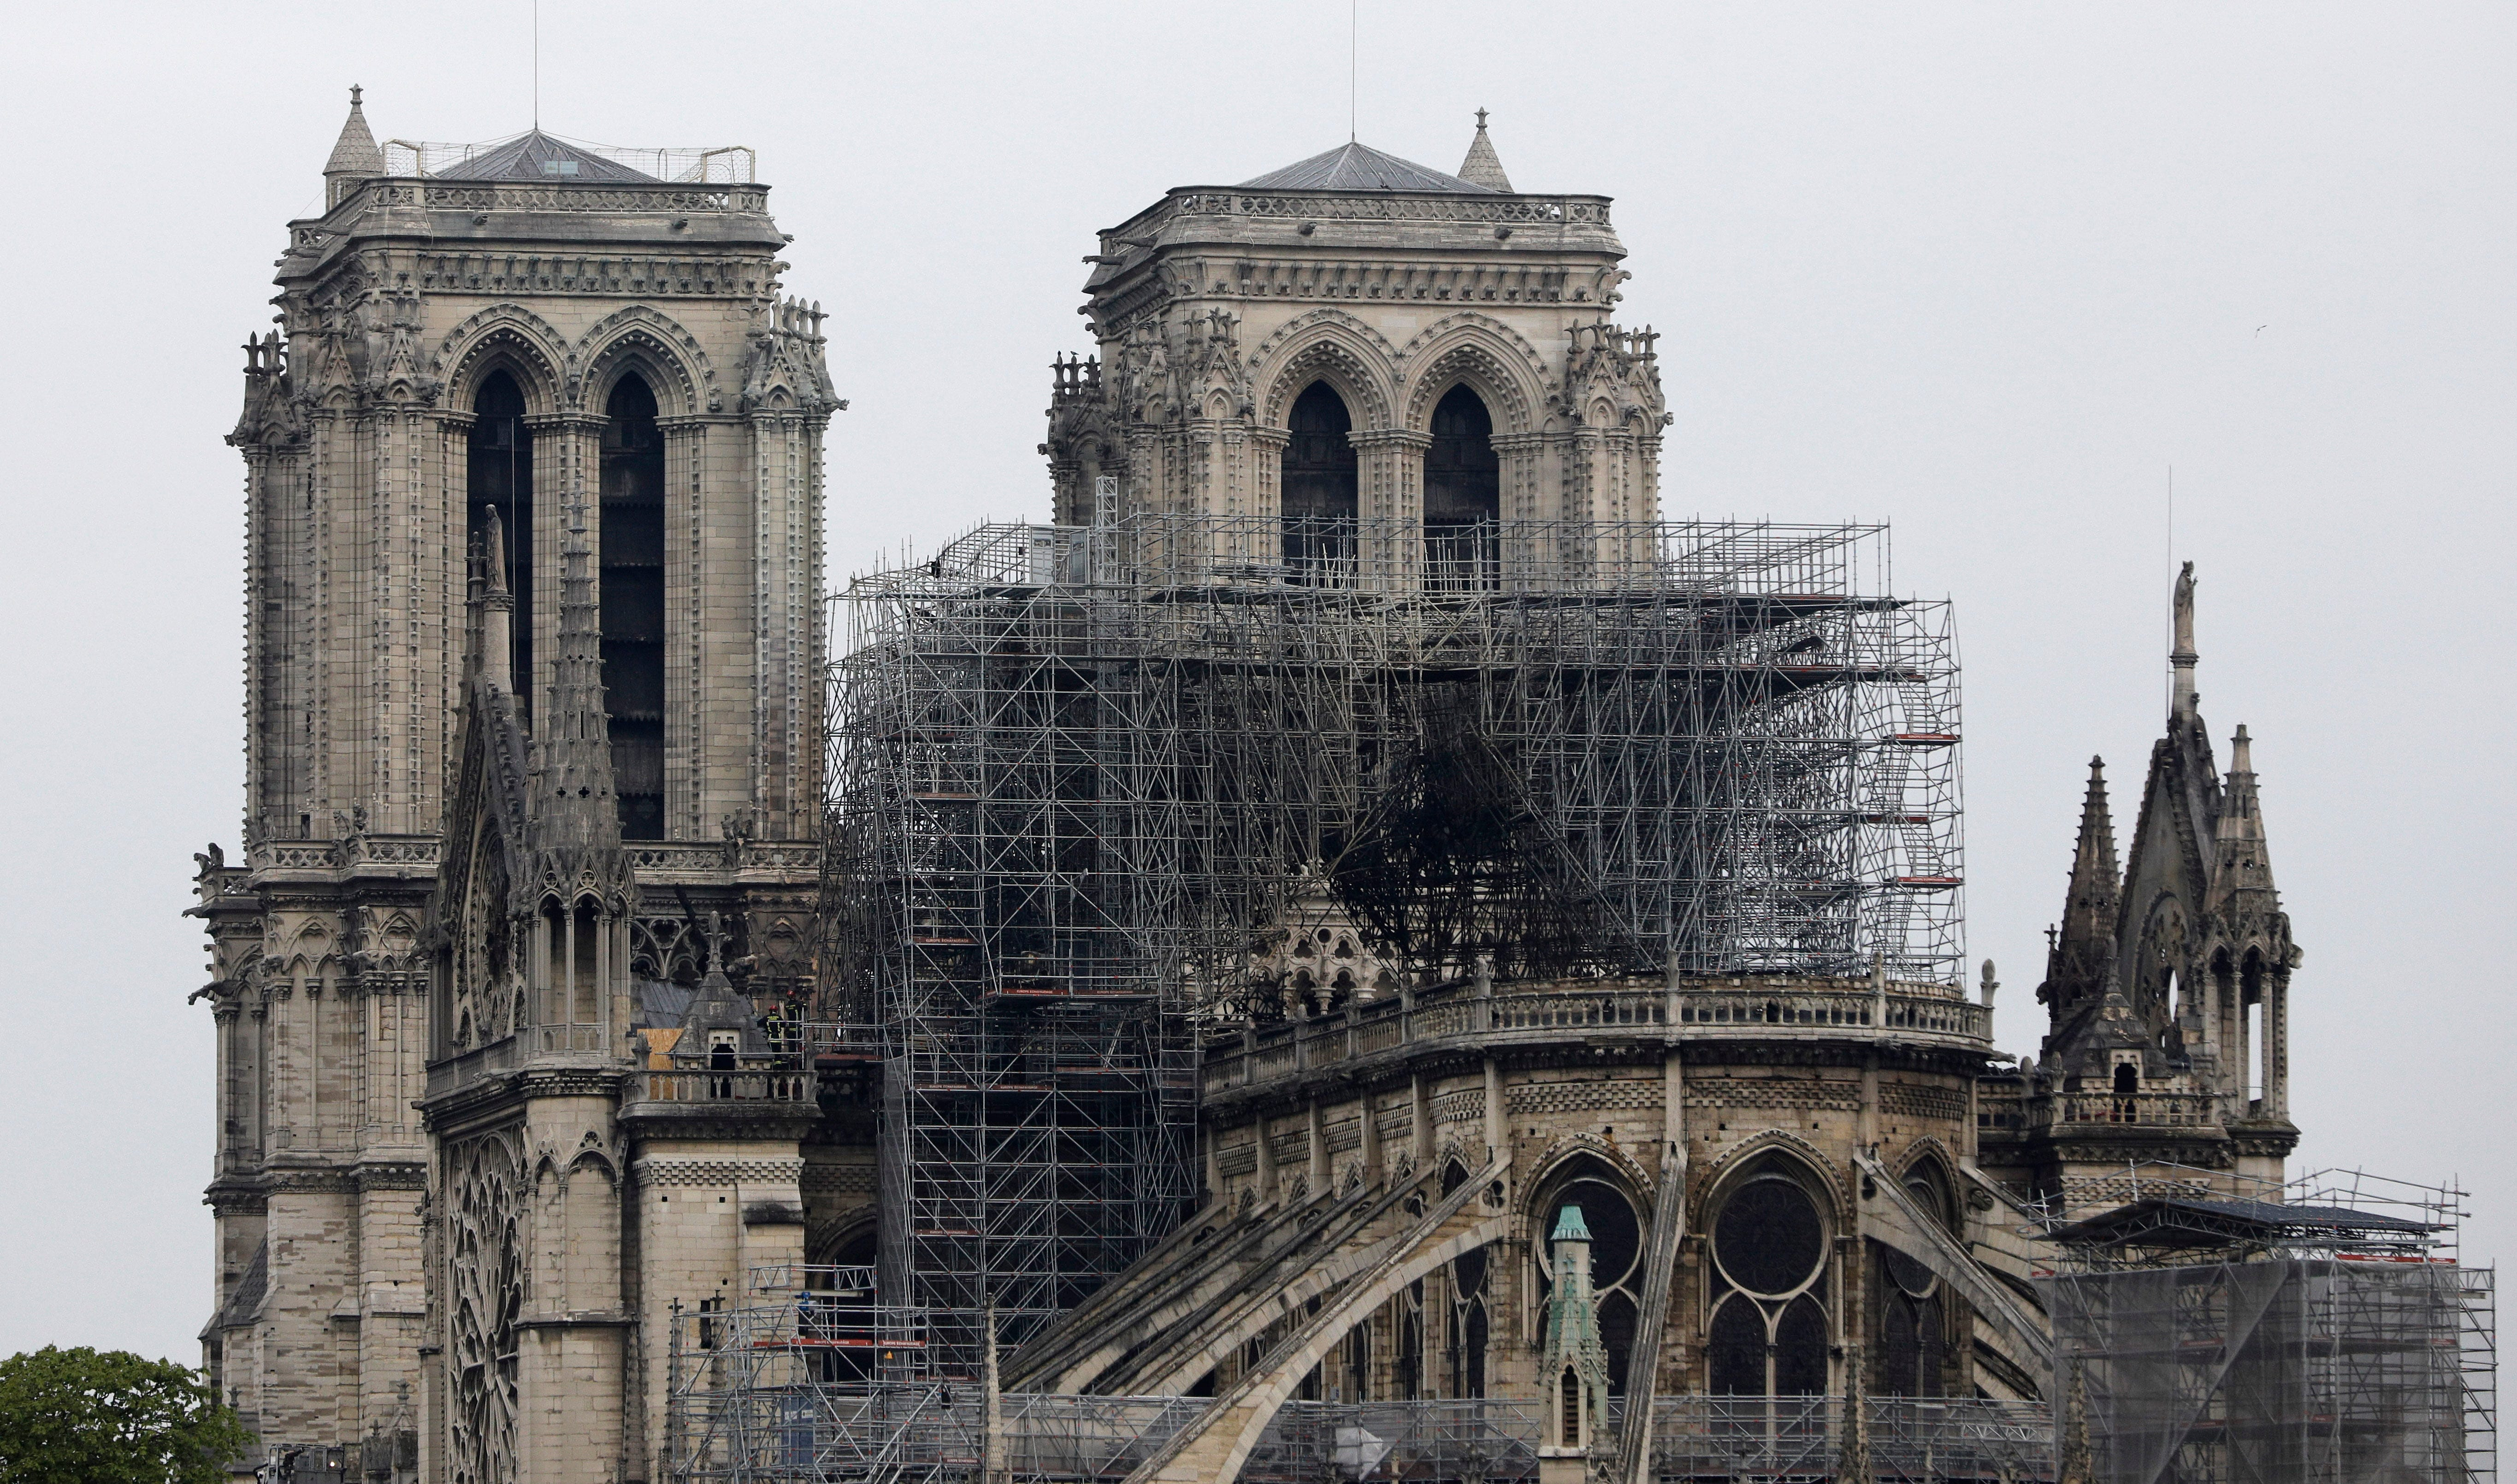 Notre Dame Cathedral fire, Sen. Ernest Hollings funeral: 5 things to know Tuesday